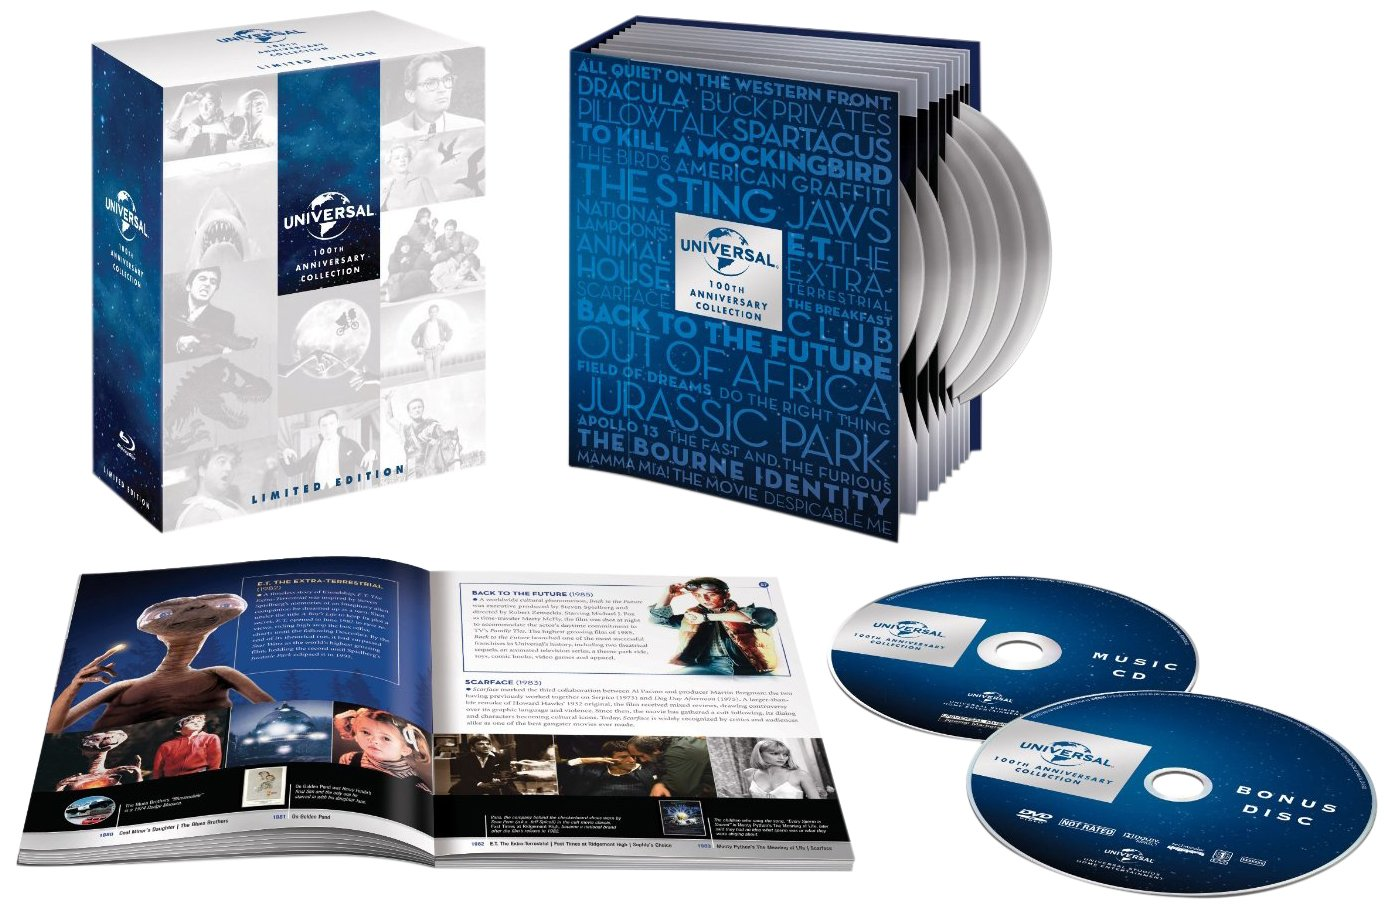 Amazon.com: Universal 100th Anniversary Collection (DVD ...